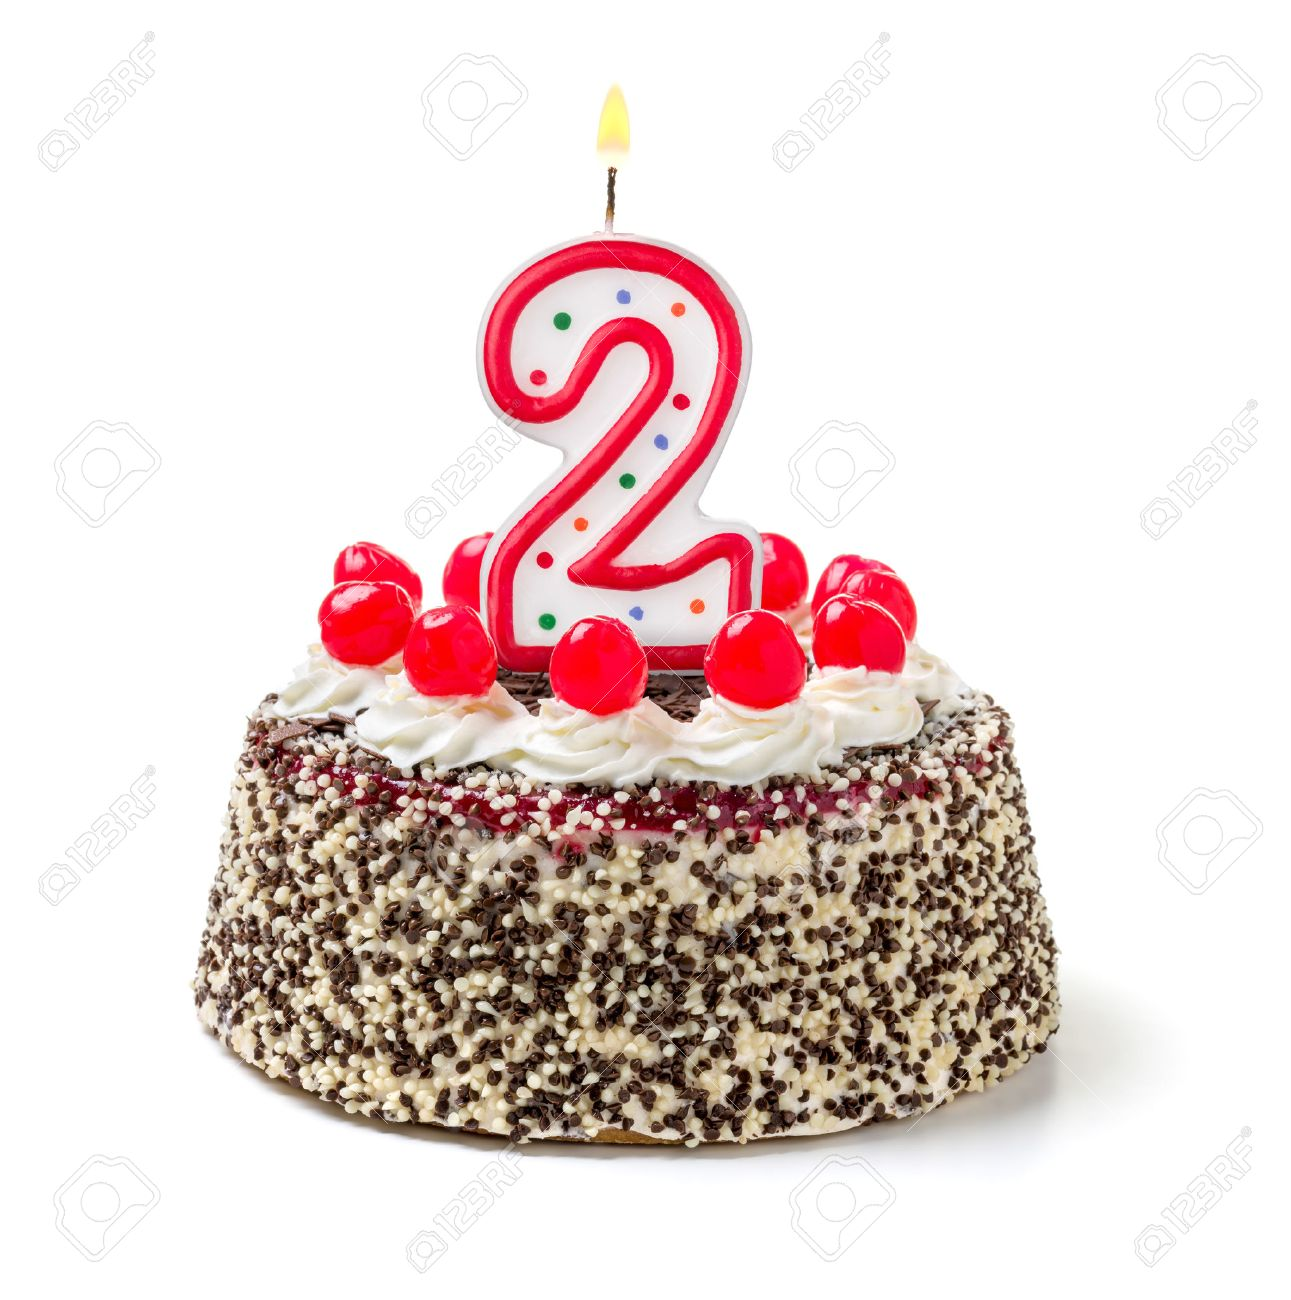 Birthday Cake With Burning Candle Number 2 Stock Photo